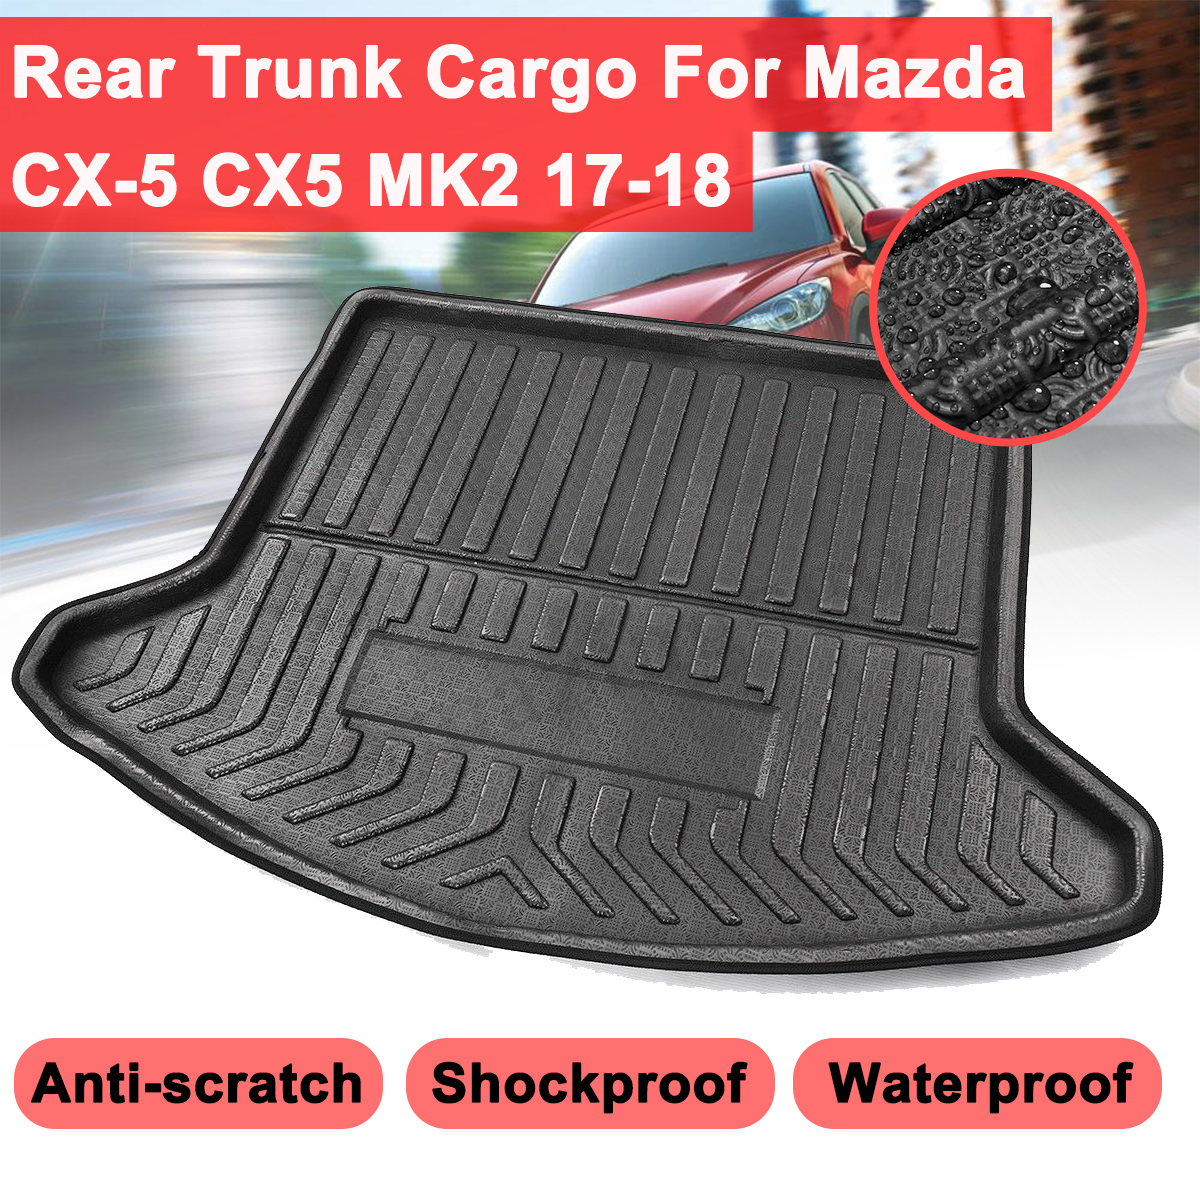 For Mazda CX-5 CX5 MK2 2017 2018 Car Styling Interior Accessories Rear Trunk Cargo Boot Liner Waterproof Mat Shockproof